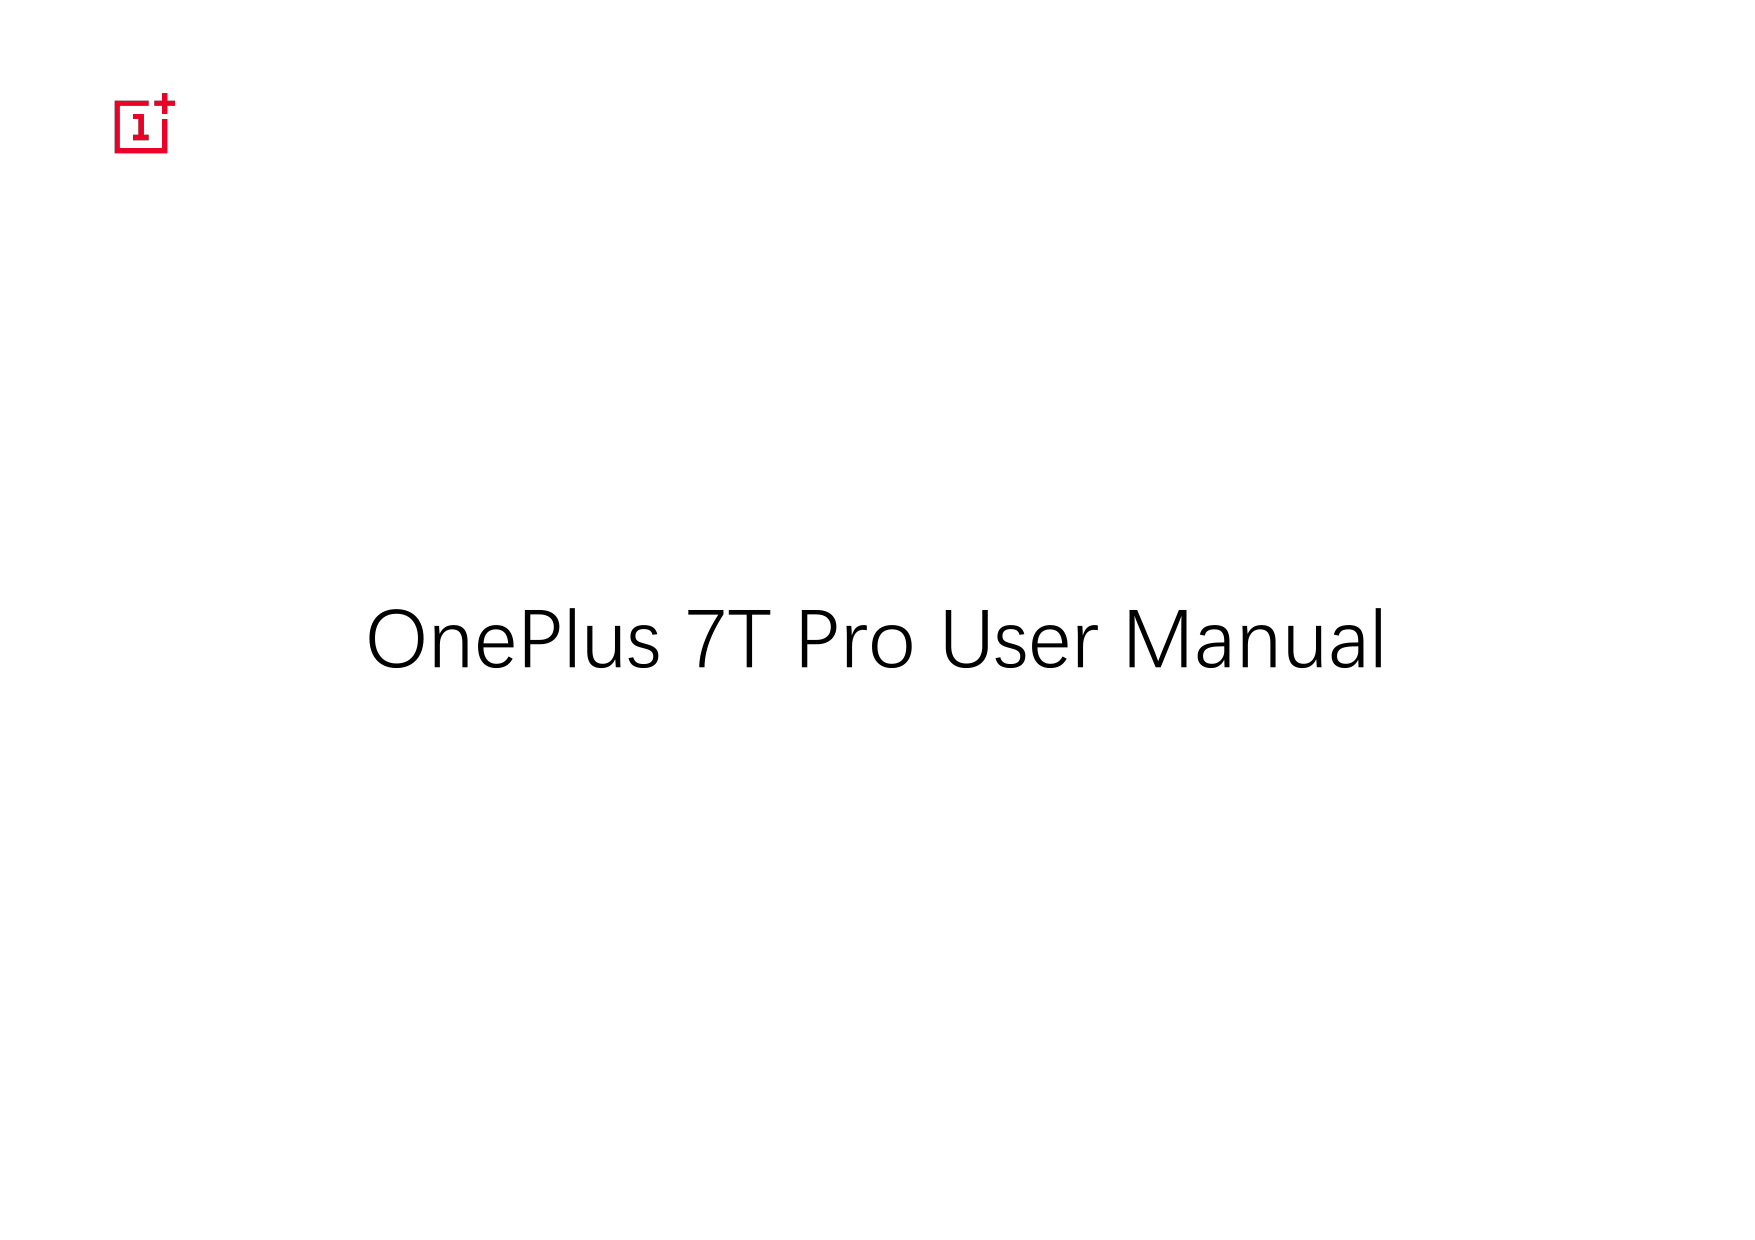 OnePlus 7T Pro User Manual